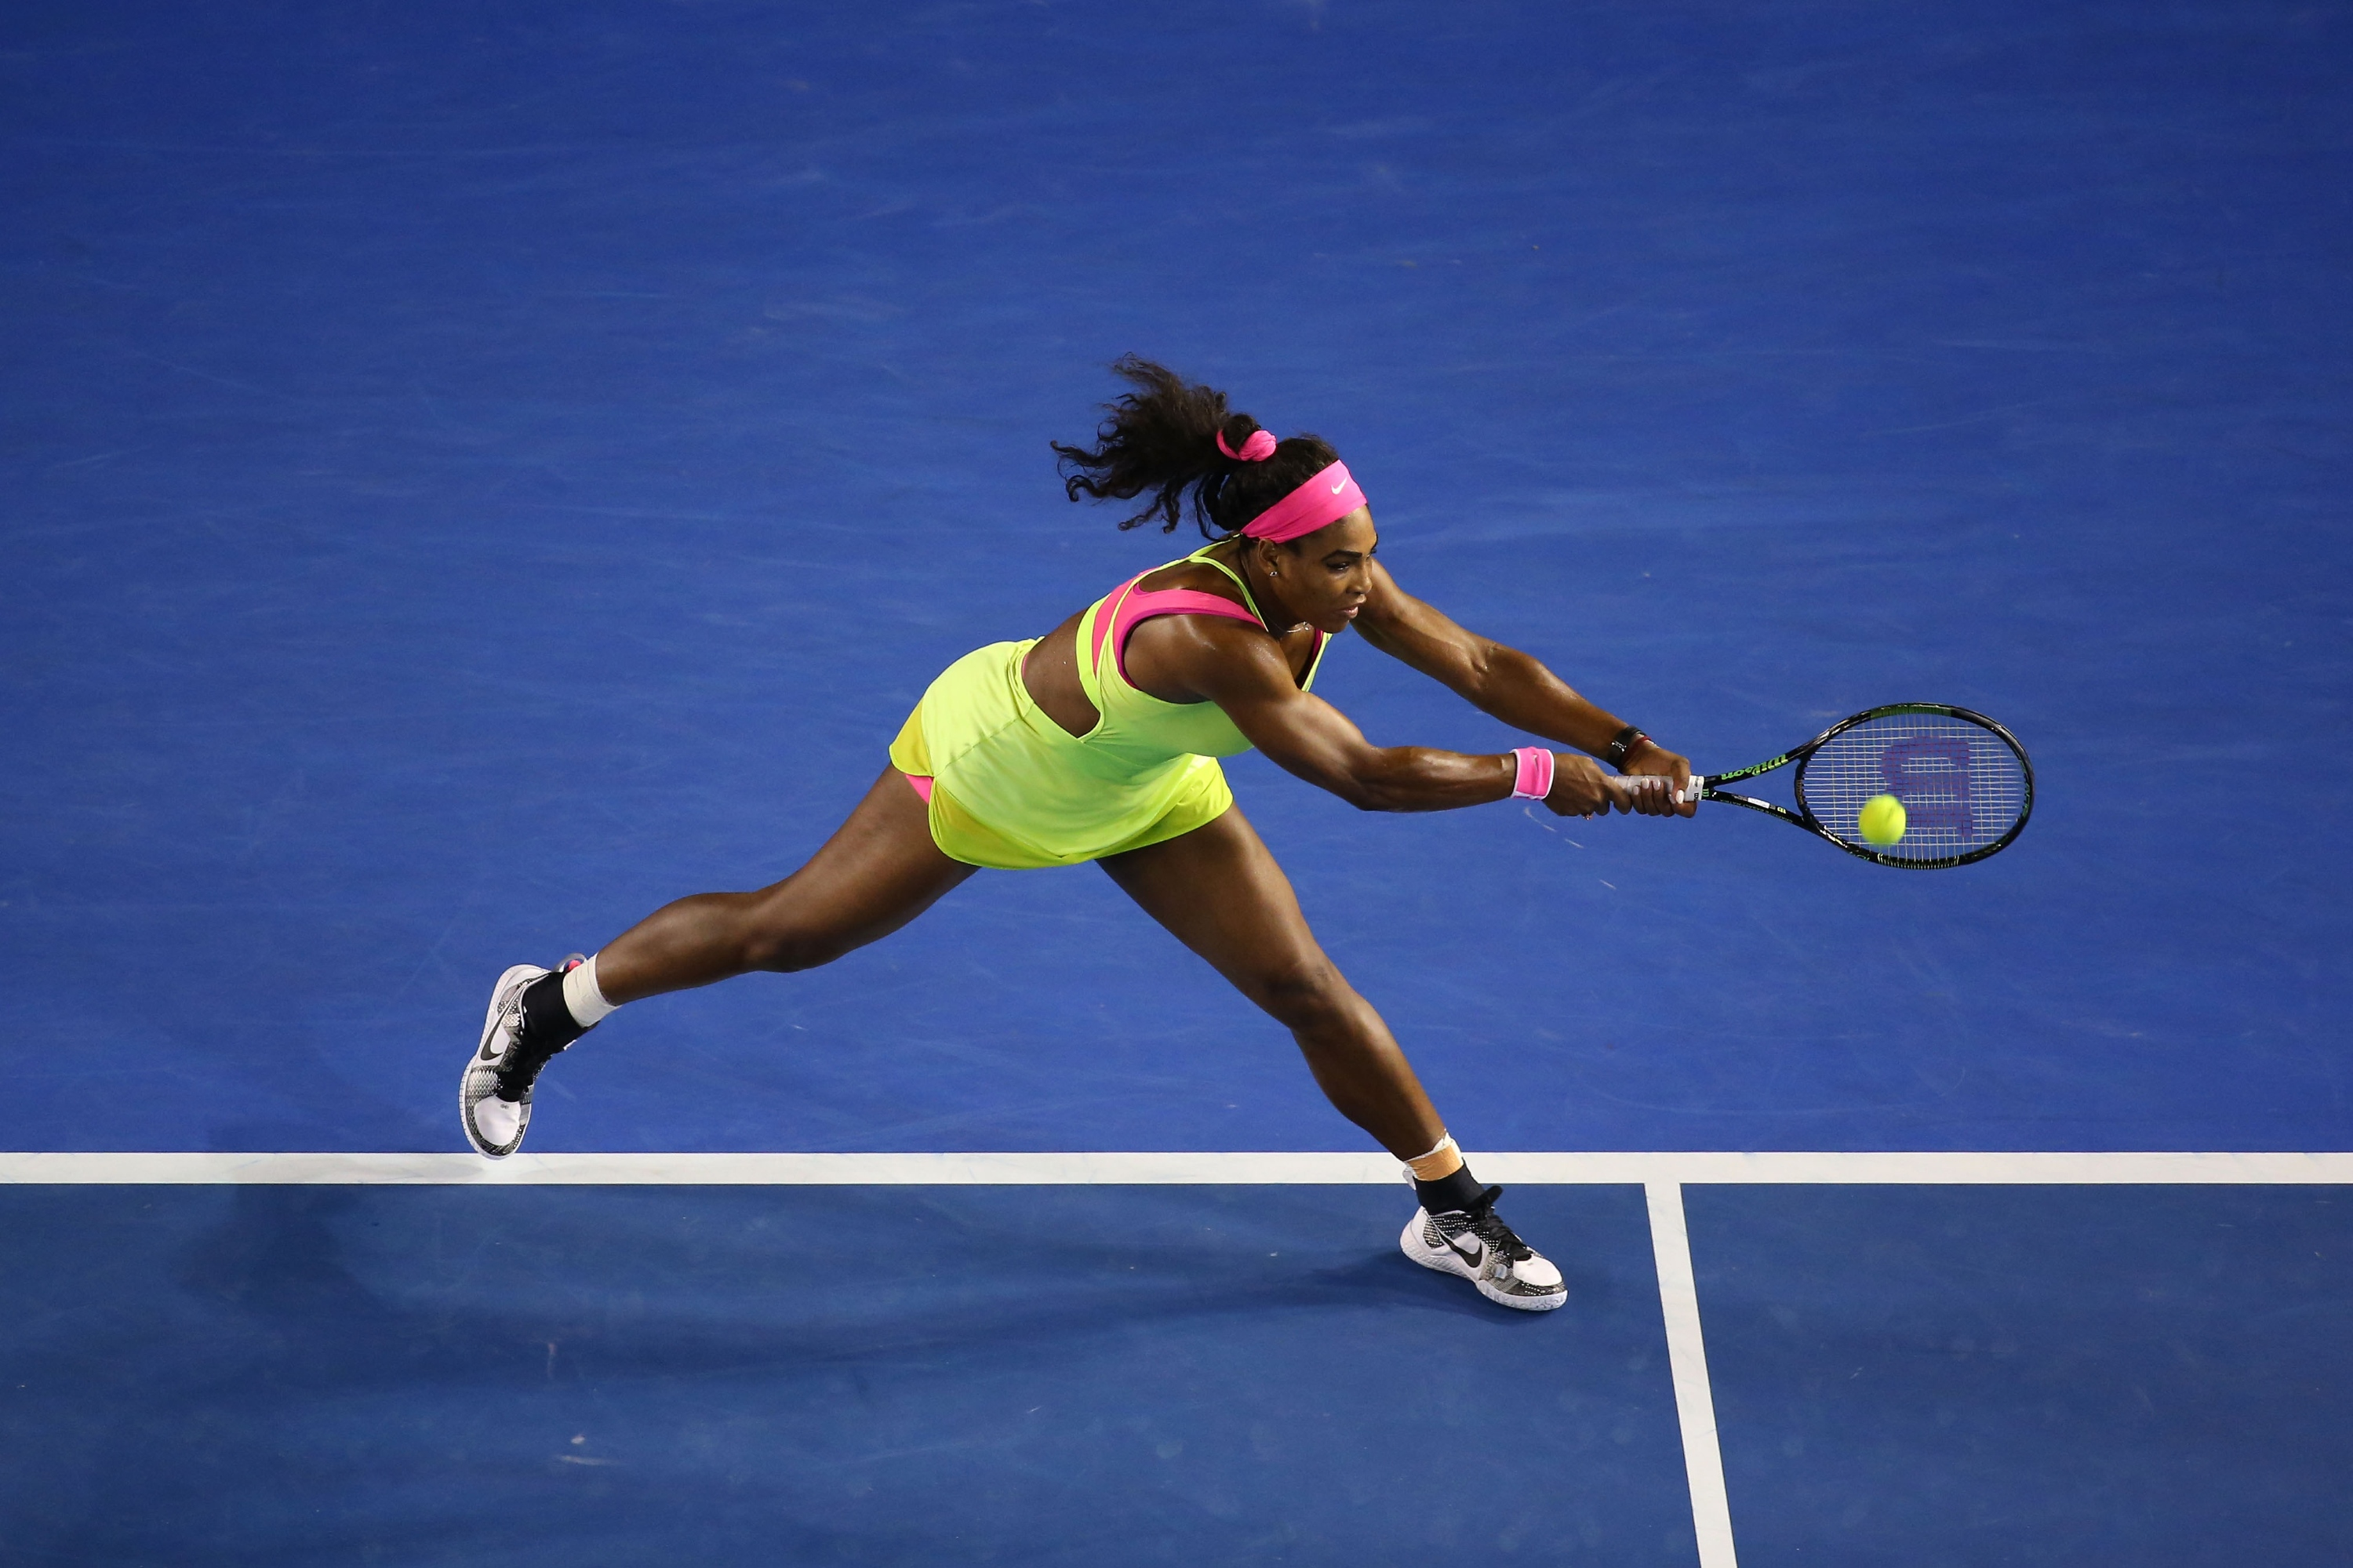 MELBOURNE, AUSTRALIA - JANUARY 31:  Serena Williams of the United States plays a forehand in her women's final match against Maria Sharapova of Russia during day 13 of the 2015 Australian Open at Melbourne Park on January 31, 2015 in Melbourne, Australia.  (Photo by Quinn Rooney/Getty Images)